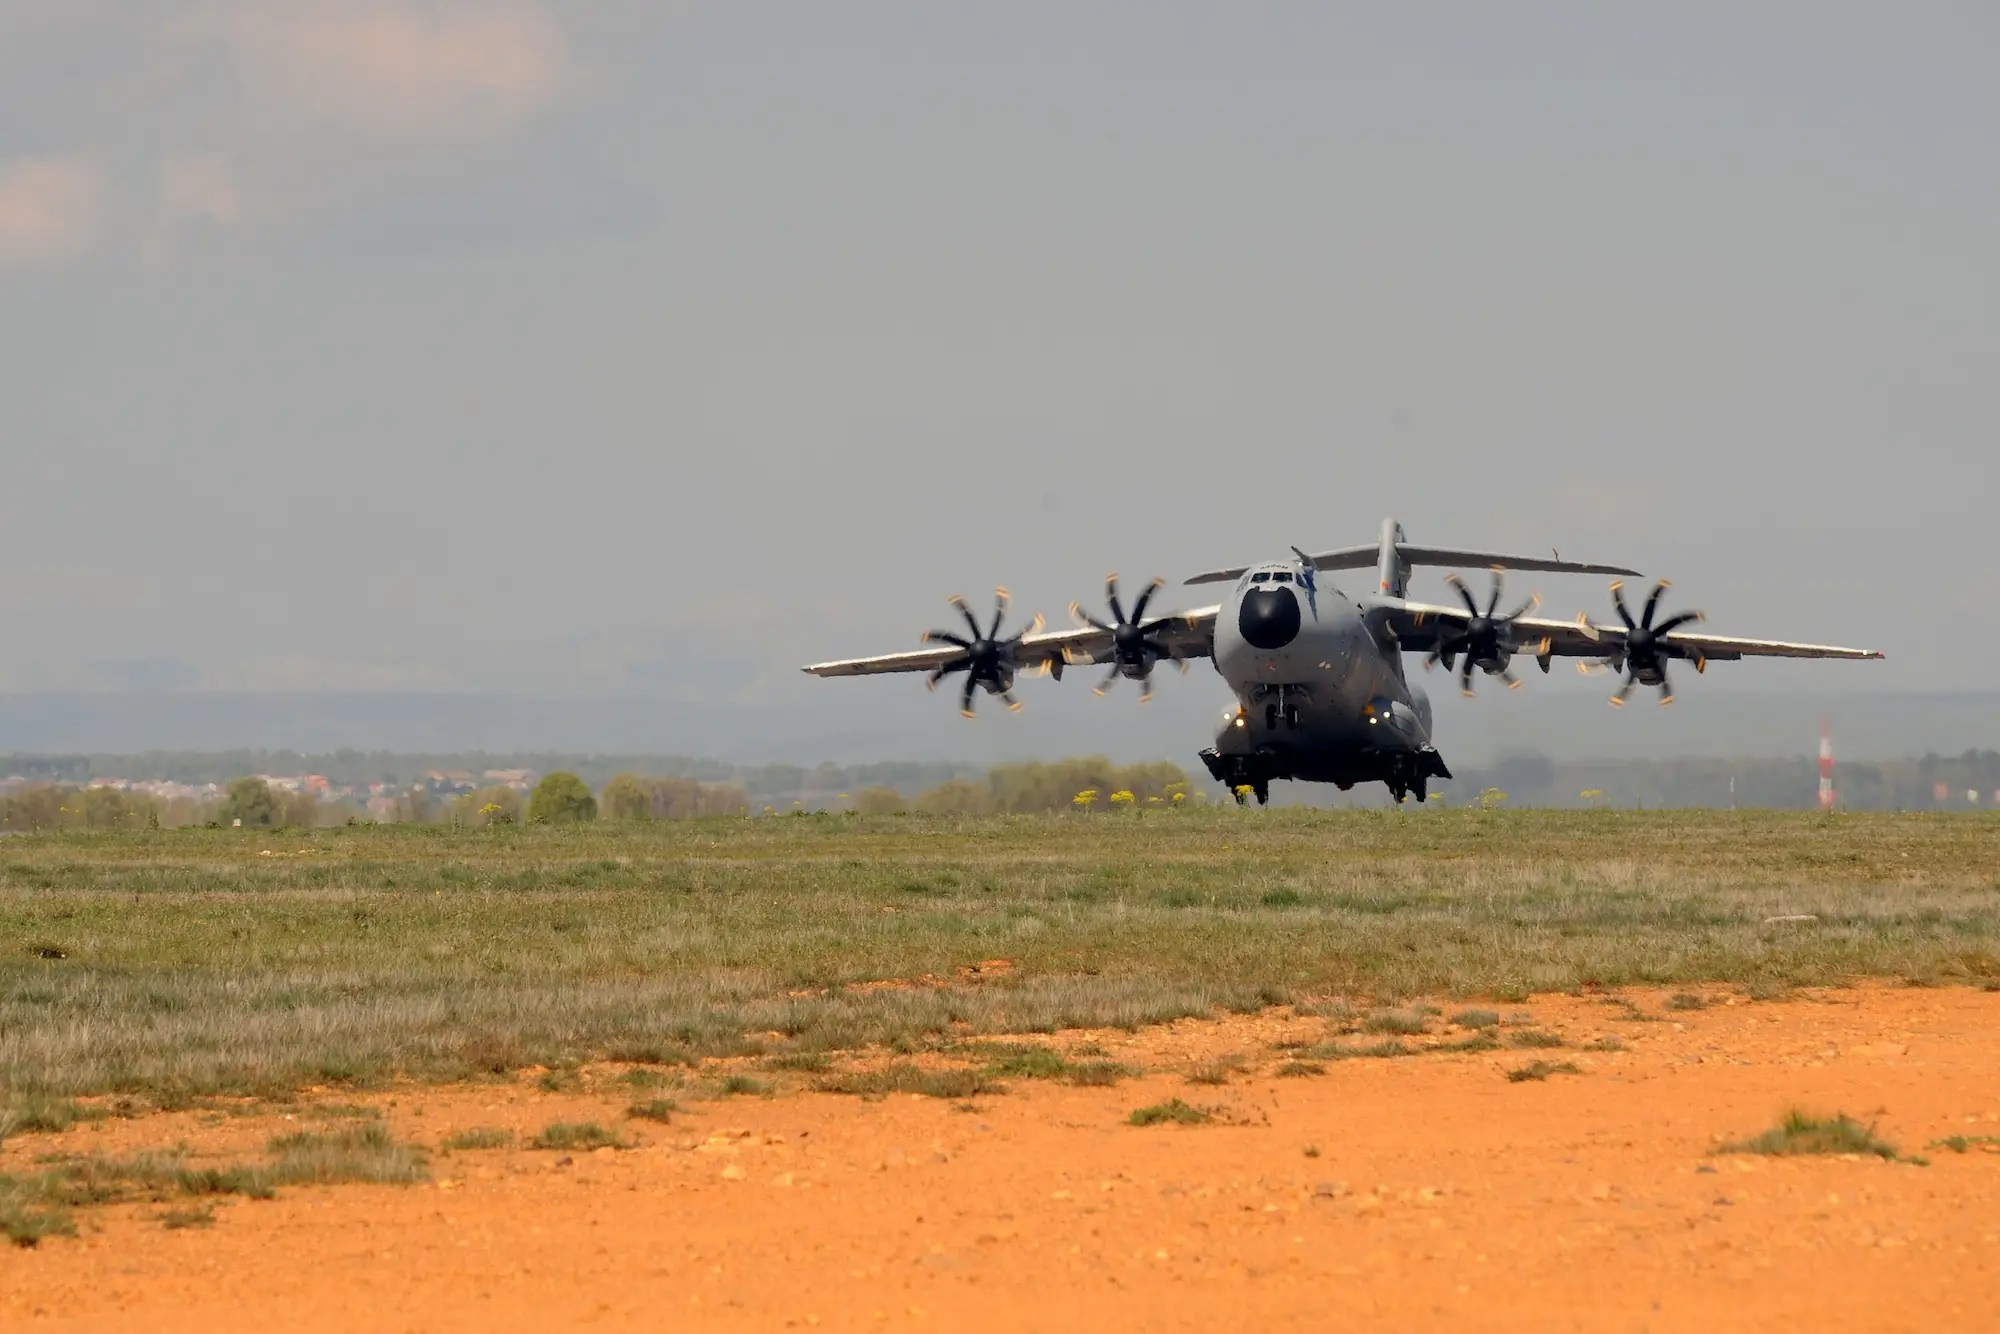 Thanks to shock absorbing landing gear, it can touch down on unpaved airstrips, a key feature for use in emergency and military situations.